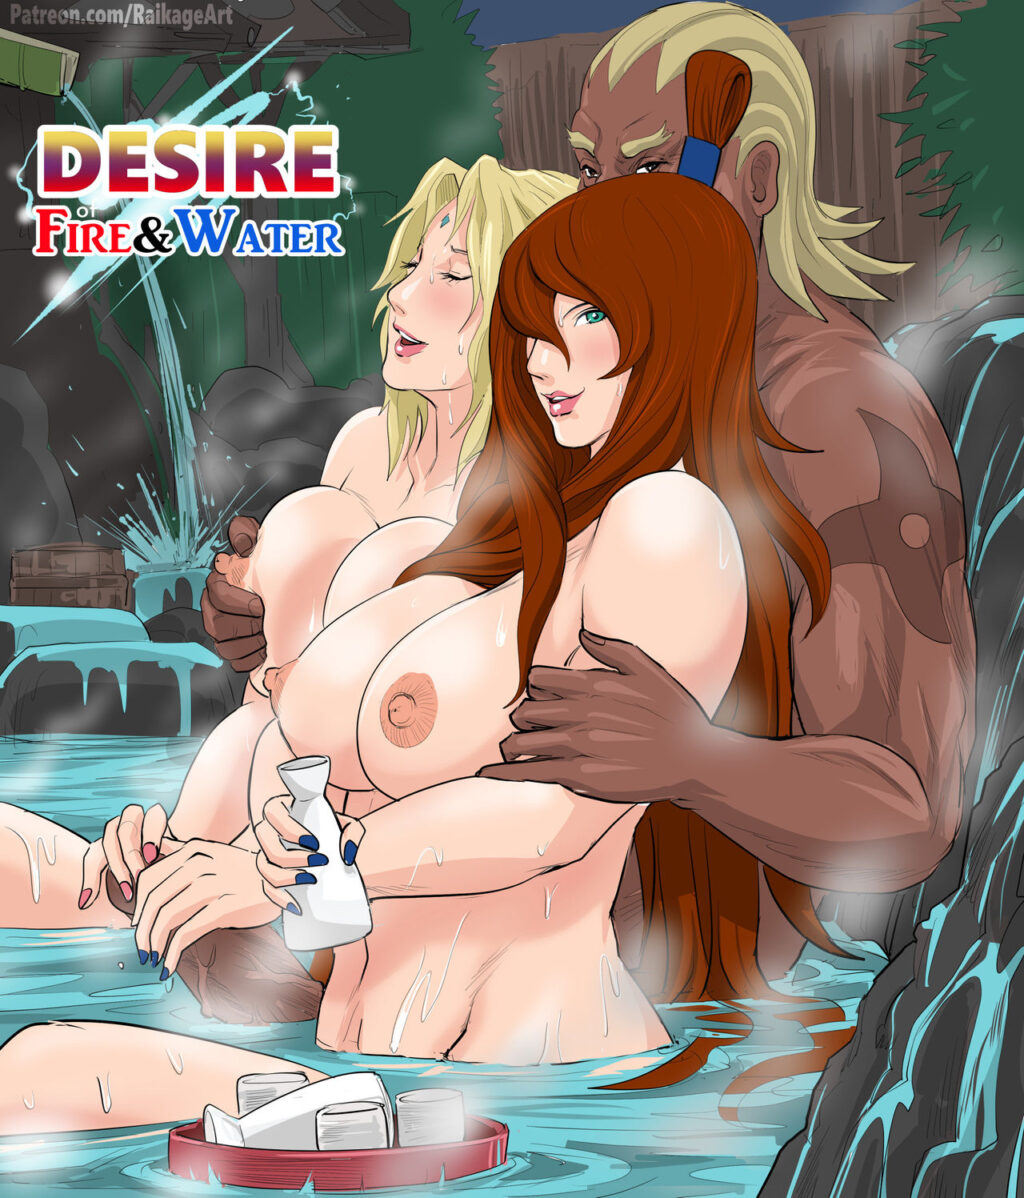 Naruto-shippuden-Hokage-Princess-姫-Hime-Tsunade-senju-Mizukage-Mei-Terumī-interracial-sucks-BBC-porn-comic-big-Black-Raikage-sama-cock-sucking-thick-big-boobs-fat-ass-threesome-bisexual-drunk-Desire-of-Fire-and-water-PrIncesse-interracial-suce-pénis-porno-bande-dessinée-gros-sucer-épais-gros-seins-gros-cul-trio-bisexuel-sexe-ivre-Désir-de-feu-et-d'eau